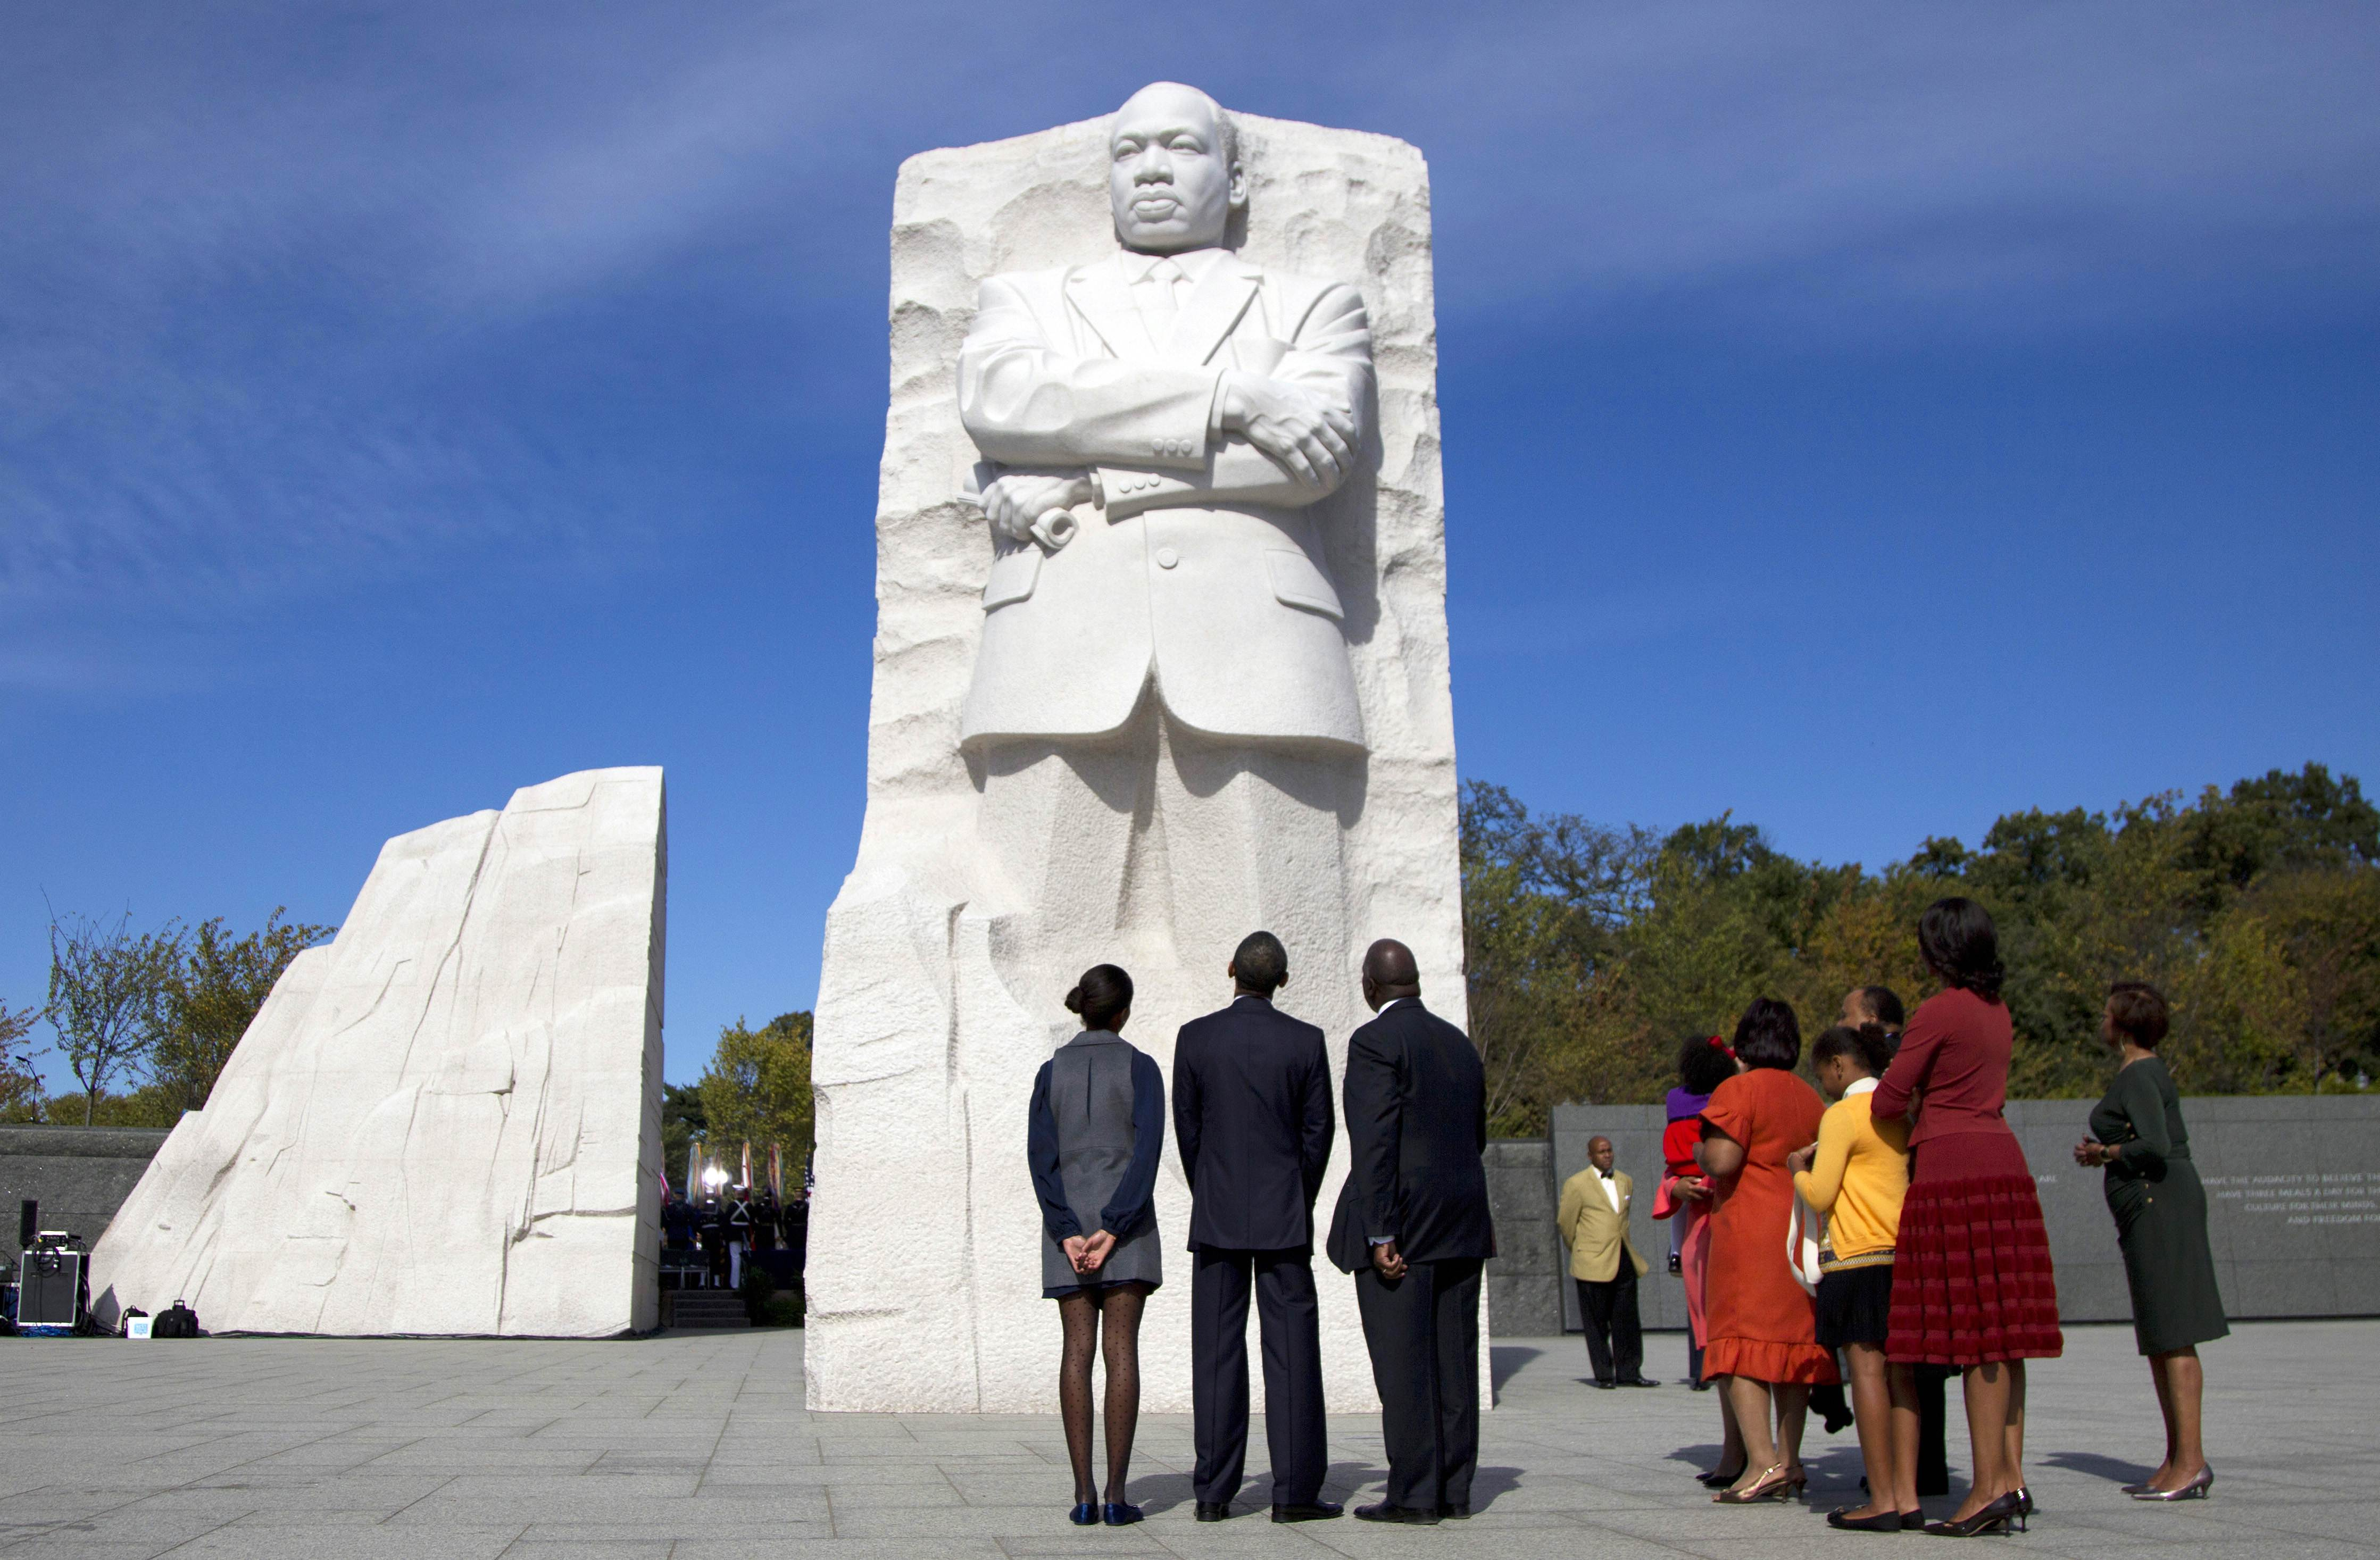 AllAfrica Op-ed: What King's Legacy Means for Africa Today